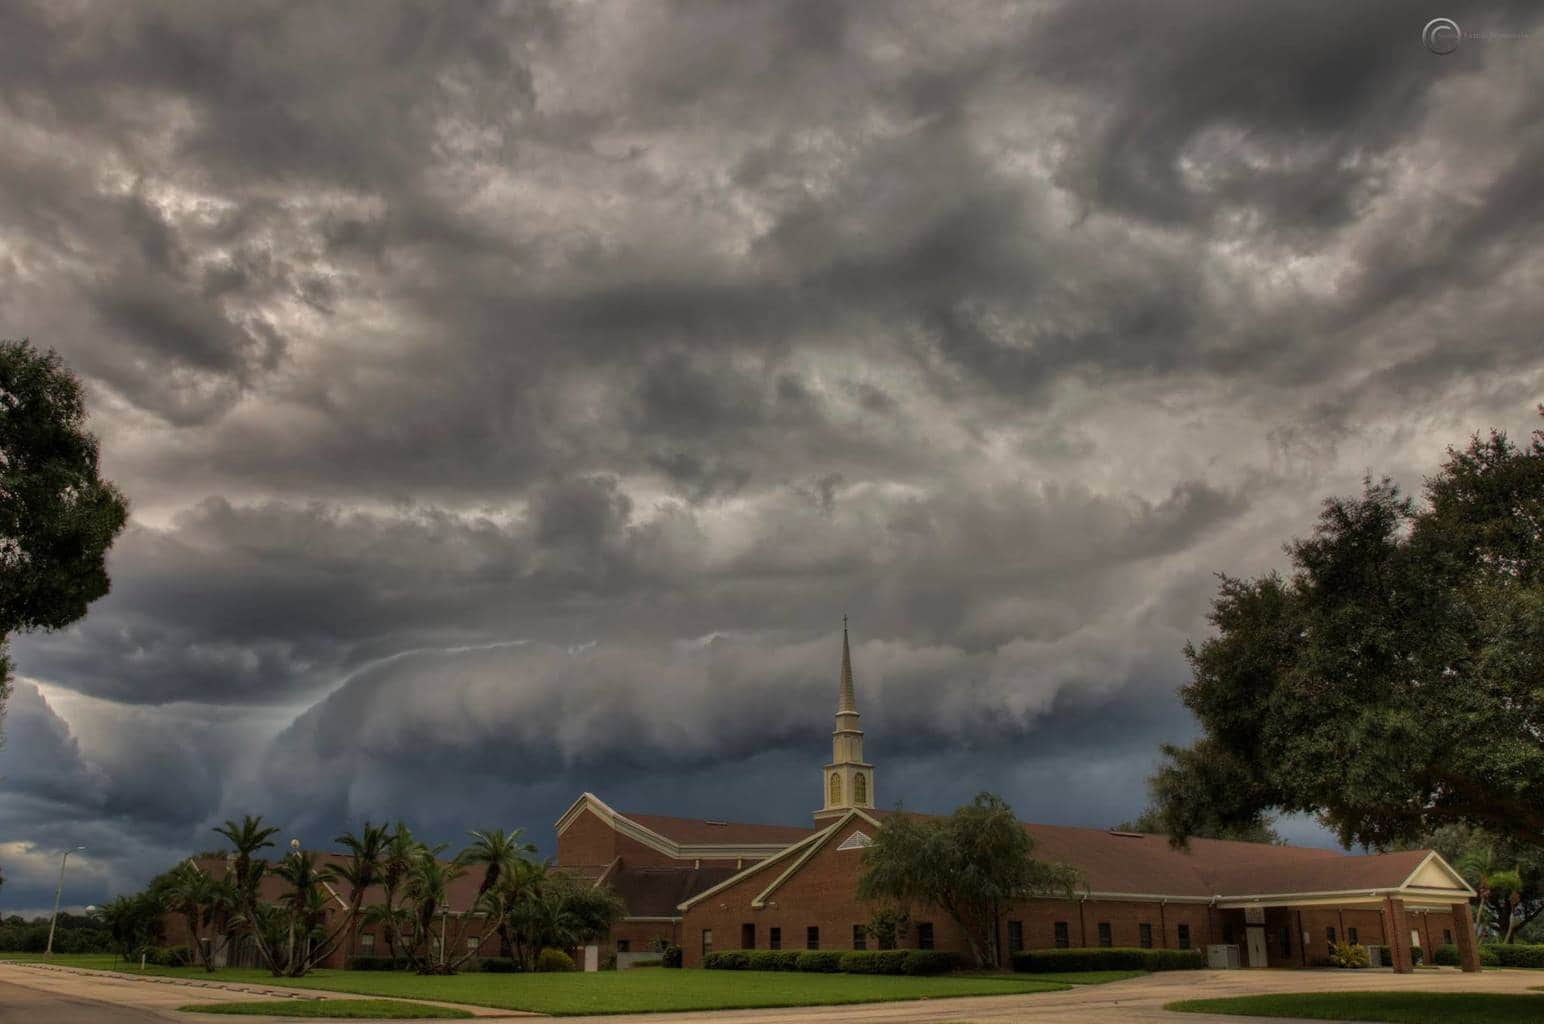 Gnarly storm moving over this church in Wauchula, Fl yesterday